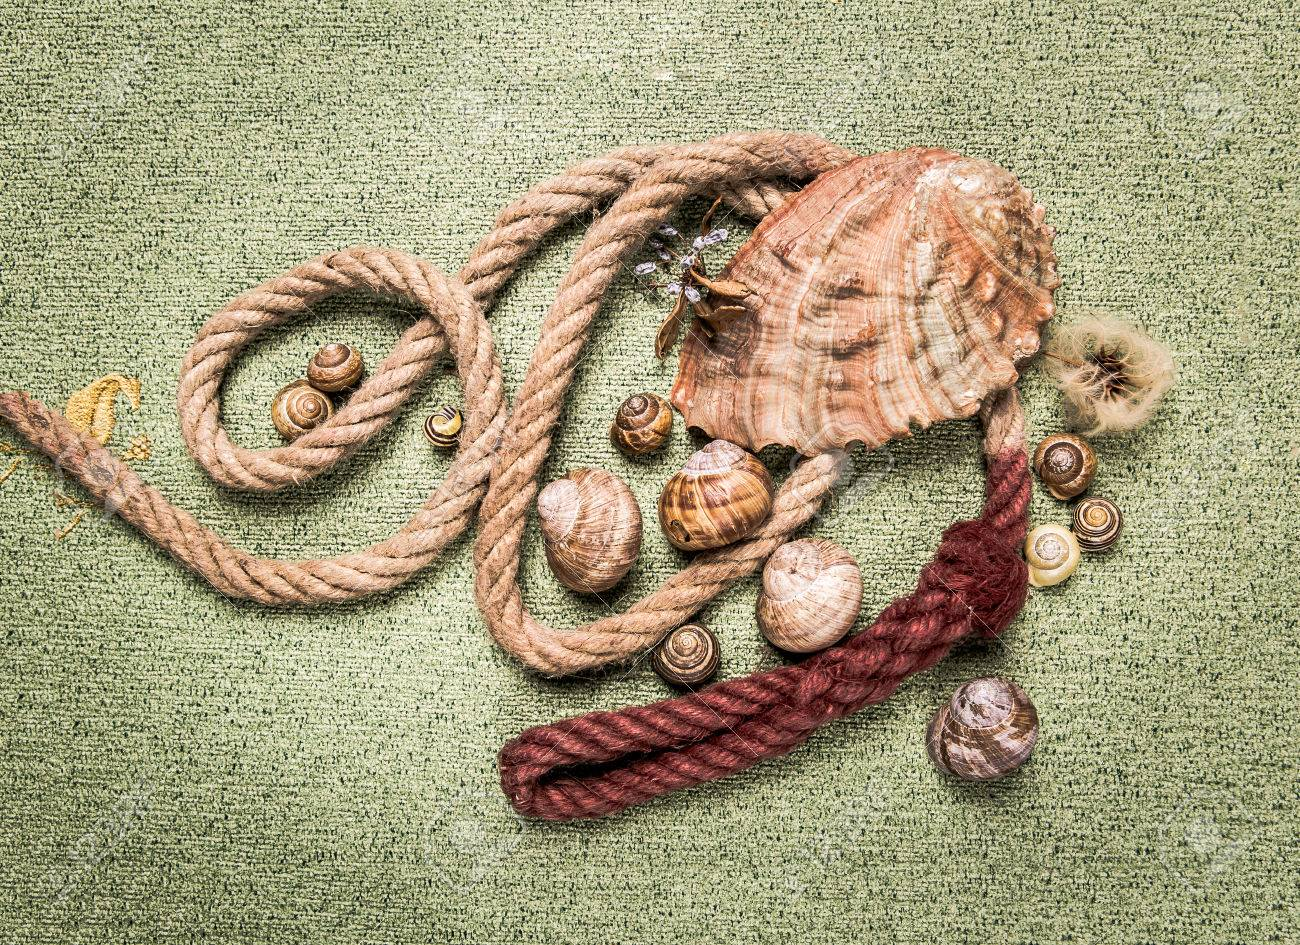 mussels and snail shells on a green carpet - 62058278